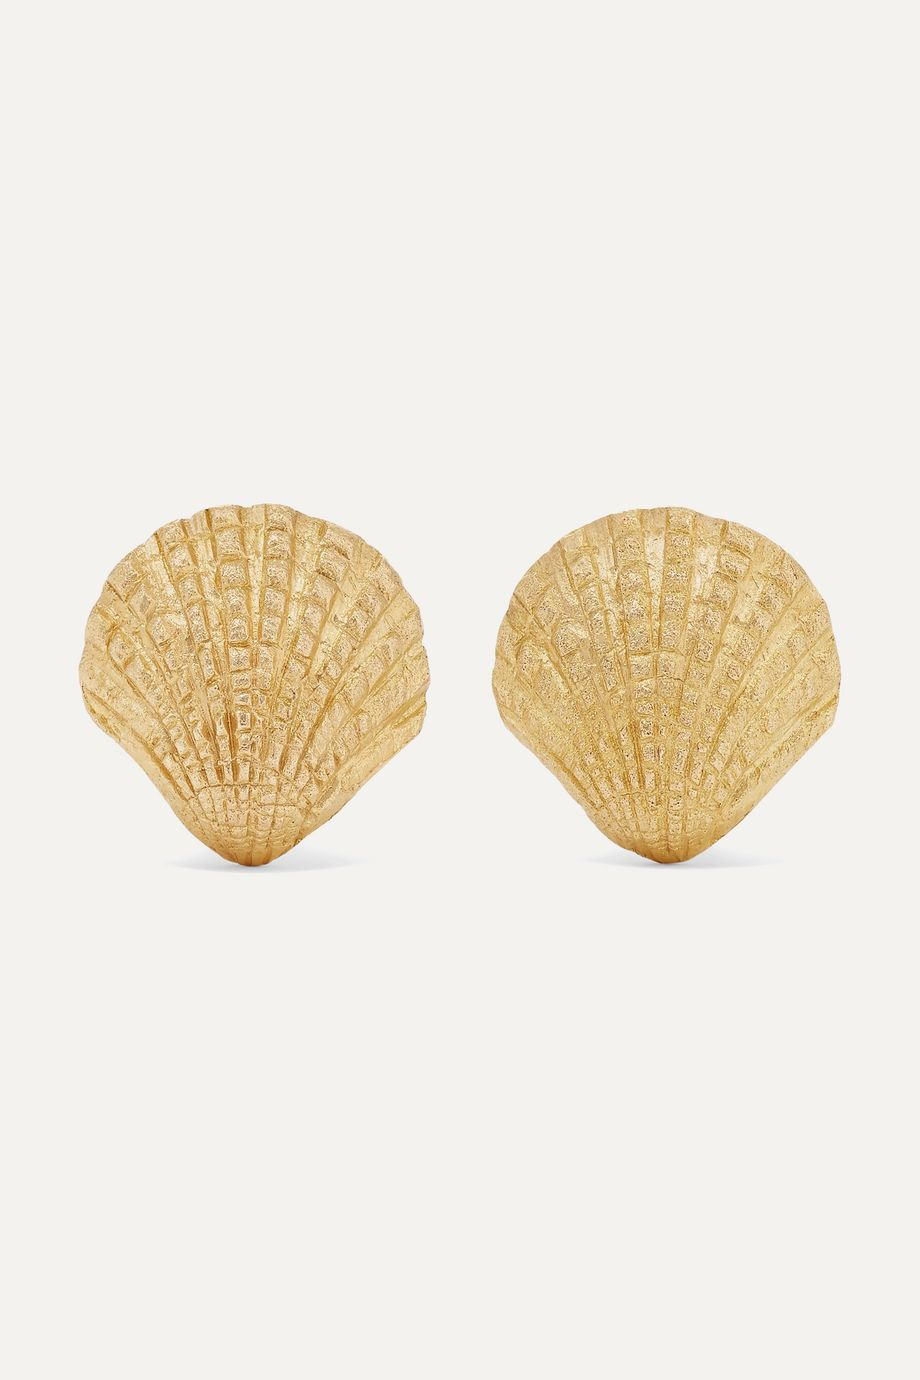 Pippa Small + NET SUSTAIN Scallop 18-karat gold earrings